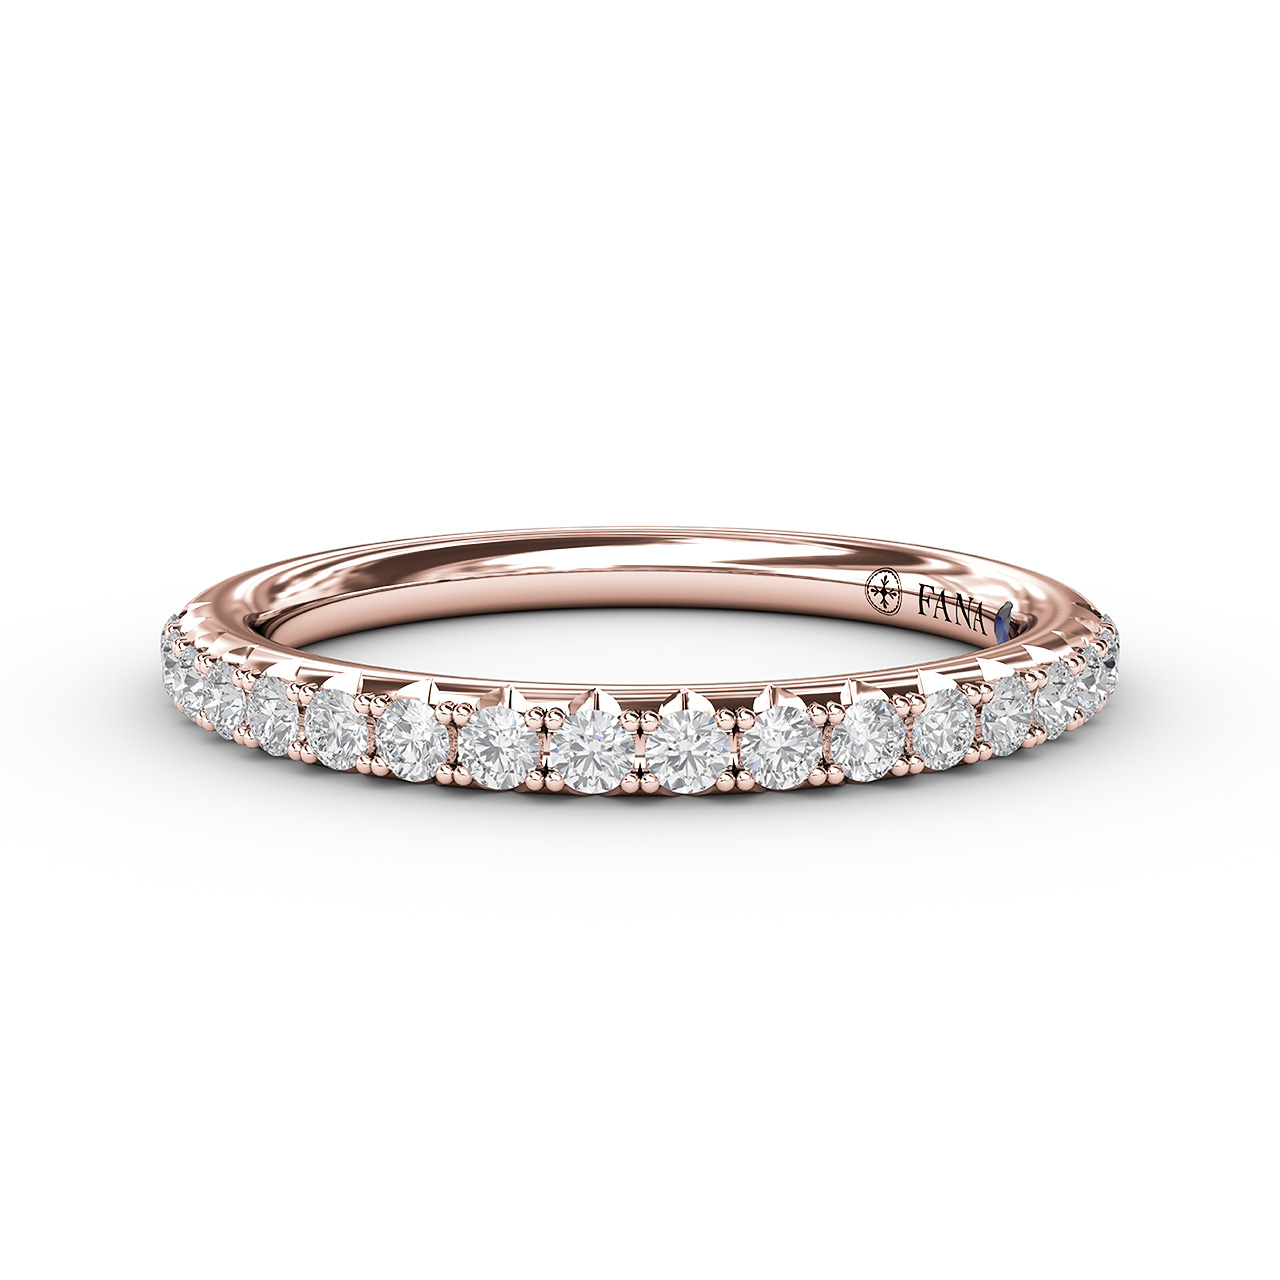 Anniversary Bands - Delicate Pave Diamond Anniversary Band